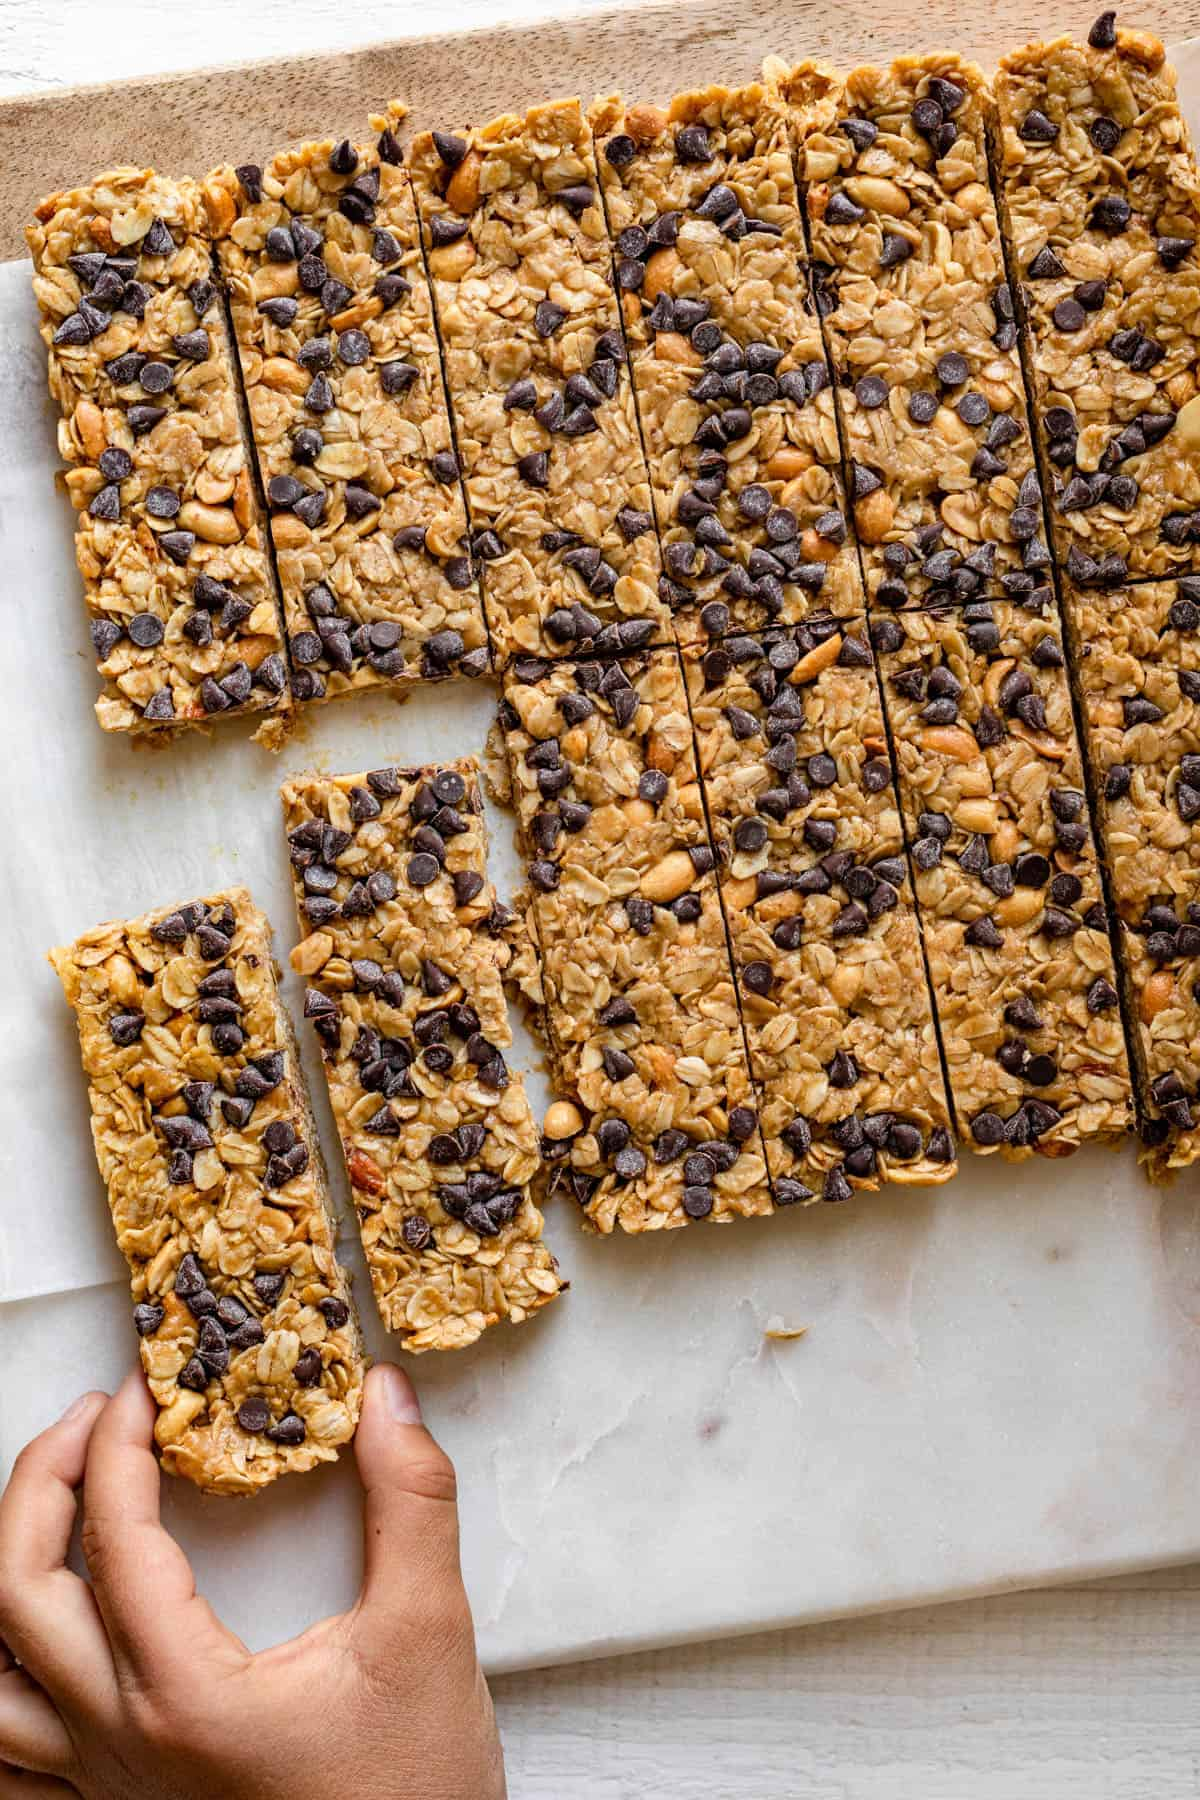 Chocolate Peanut Butter Granola Bars sliced with hand grabbing one